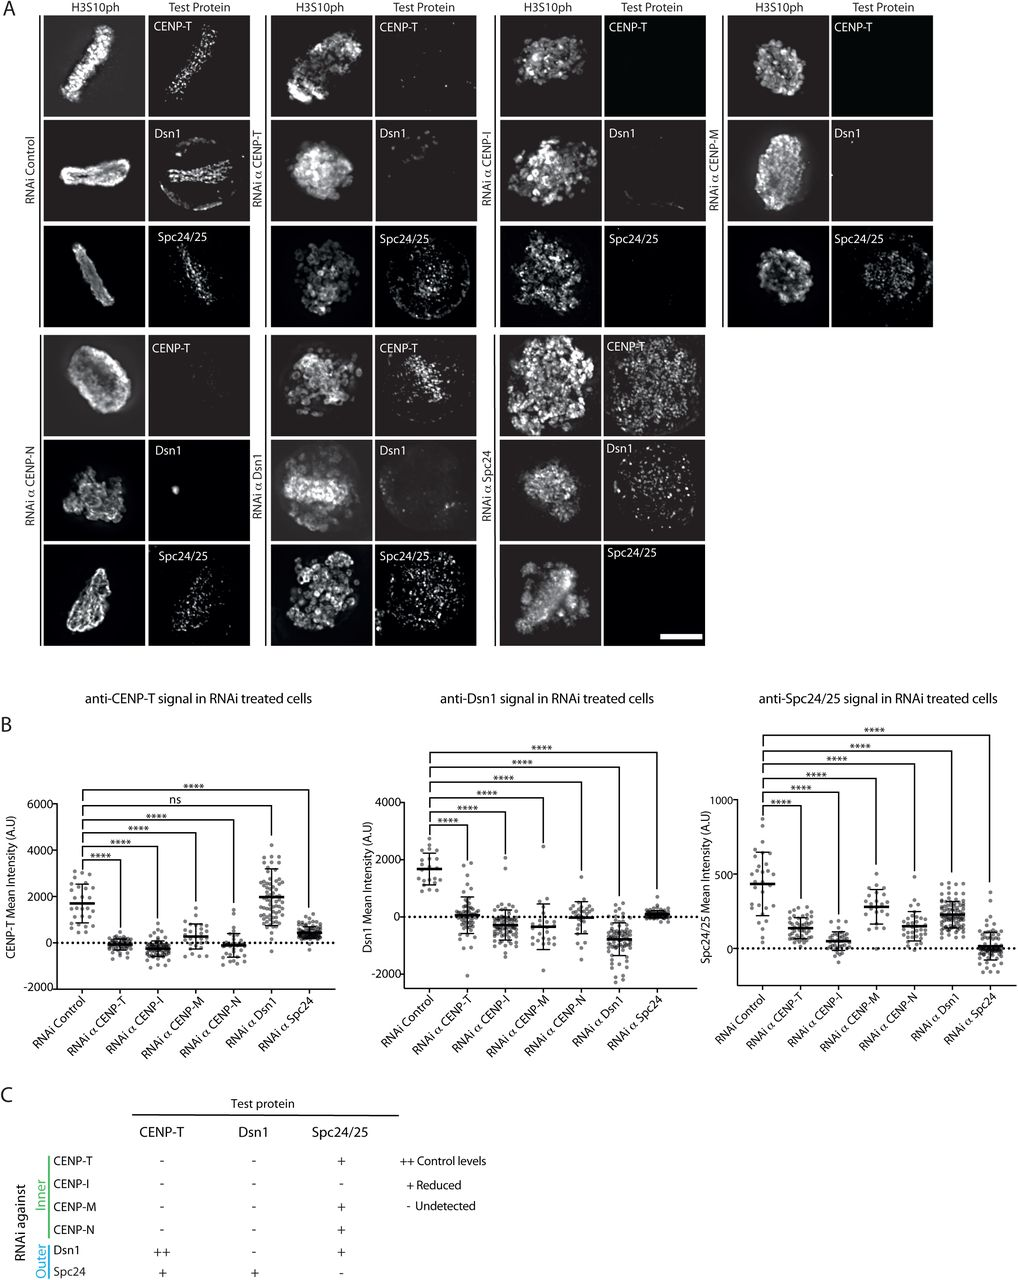 Depletion of CCAN components affects CENP-T and outer kinetochore recruitment in B. mori cells. A) Representative images of mitotic BmN4-SID1 cells showing the levels of endogenous CENP-T, Dsn1 and Spc24/25 with and without depletion of inner (CENP-T, CENP-I, CENP-M, CENP-N) and outer (Dsn1 and Spc24) kinetochore components. Scale bar: 10μm. B) Quantification of mean fluorescence intensity for CENP-T, Dsn1 and Spc24/25 signals in the control or upon kinetochore depletions. Statistical significance was tested using the Mann and Whitney test (p